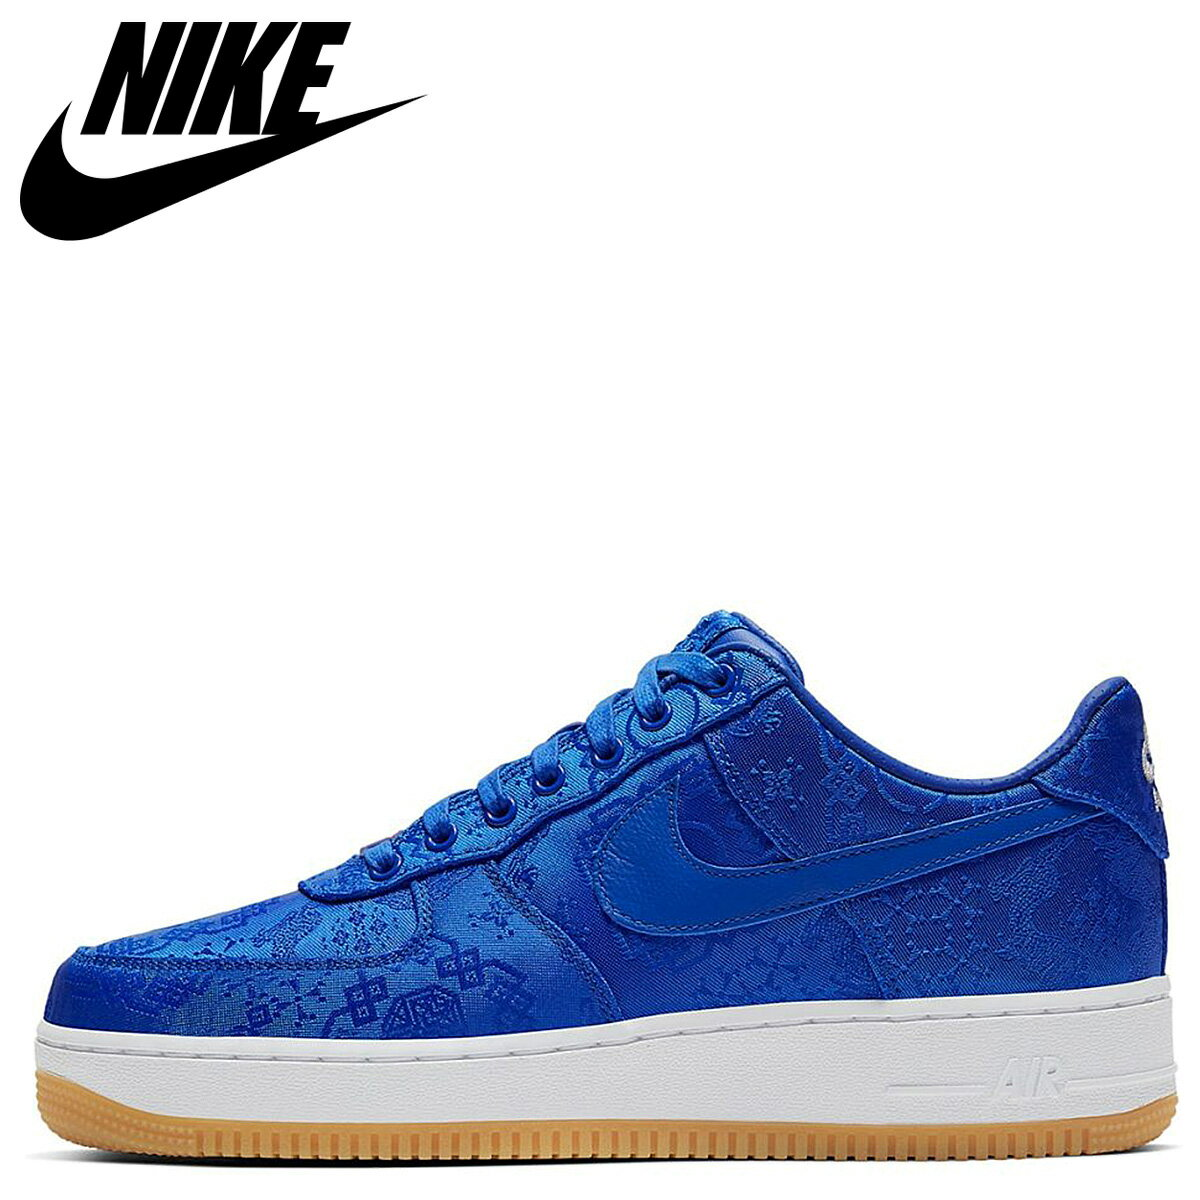 メンズ靴, スニーカー  NIKE 1 AIR FORCE 1 PREMIUM CLOT CJ5290-400 zzi